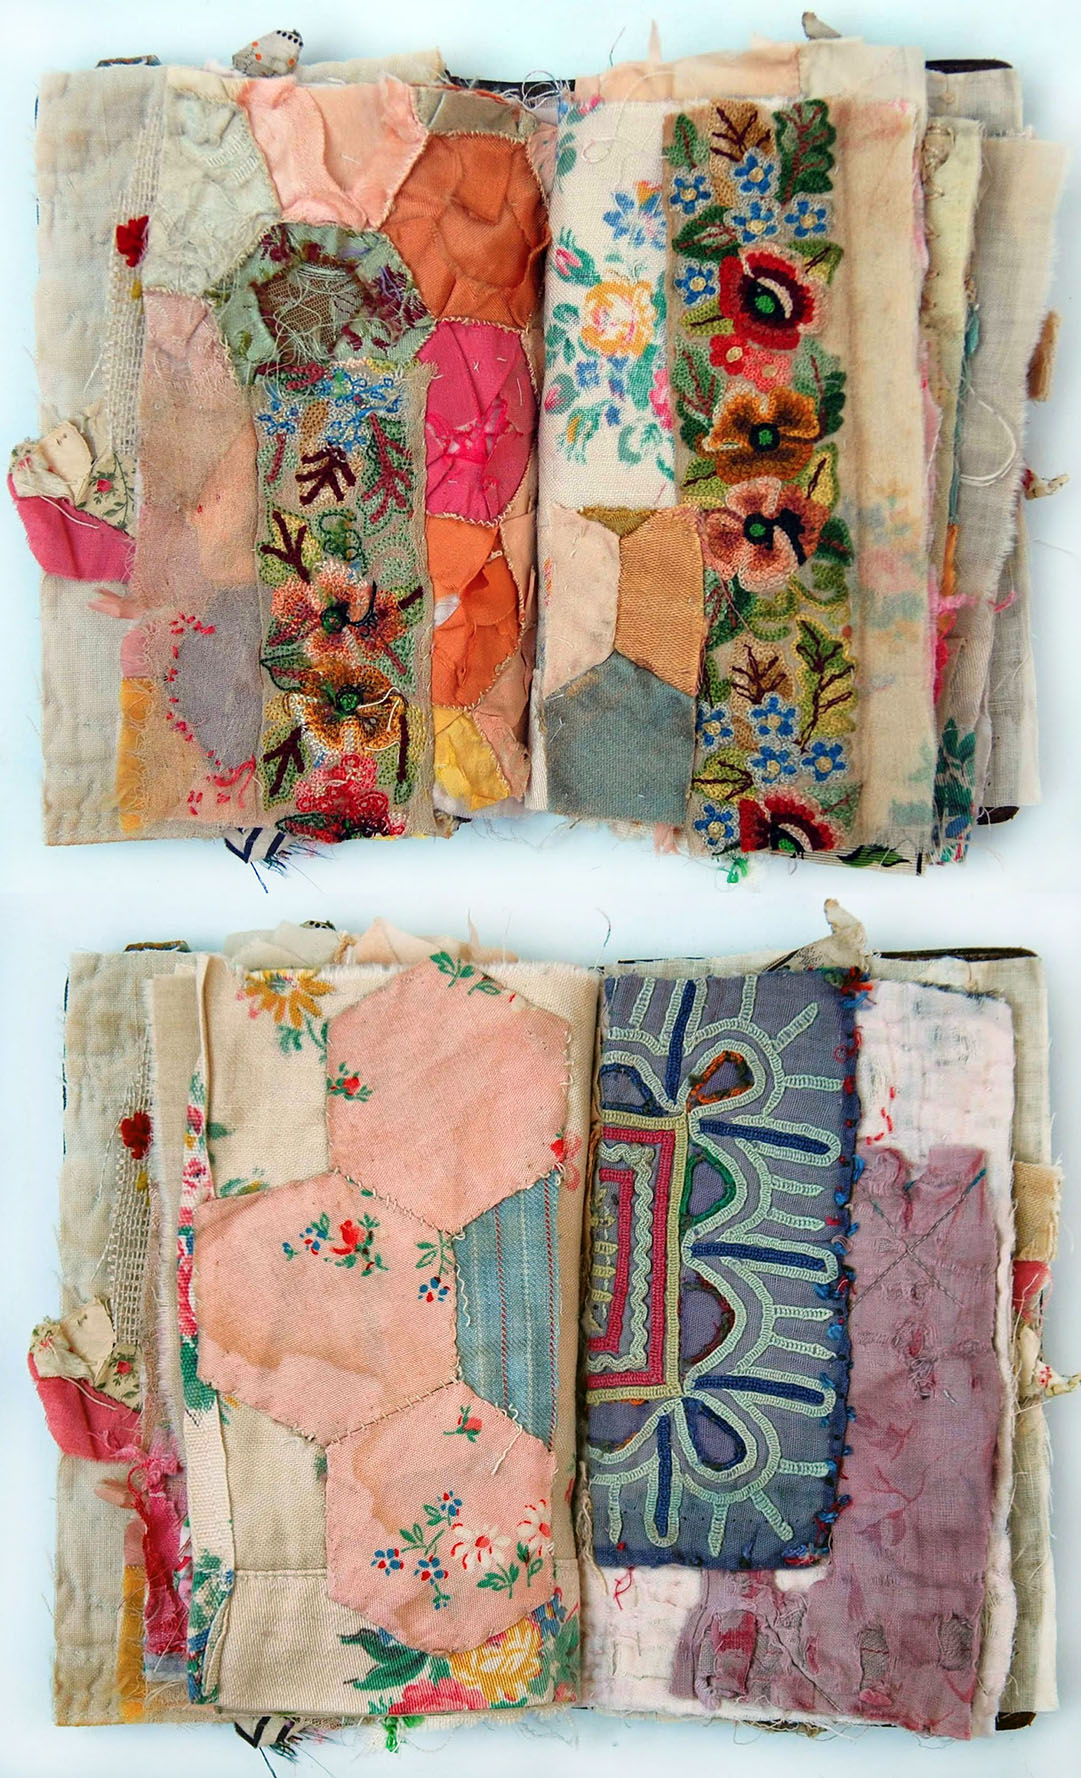 Fabric Collage And Embroidery By Textile Artist Mandy